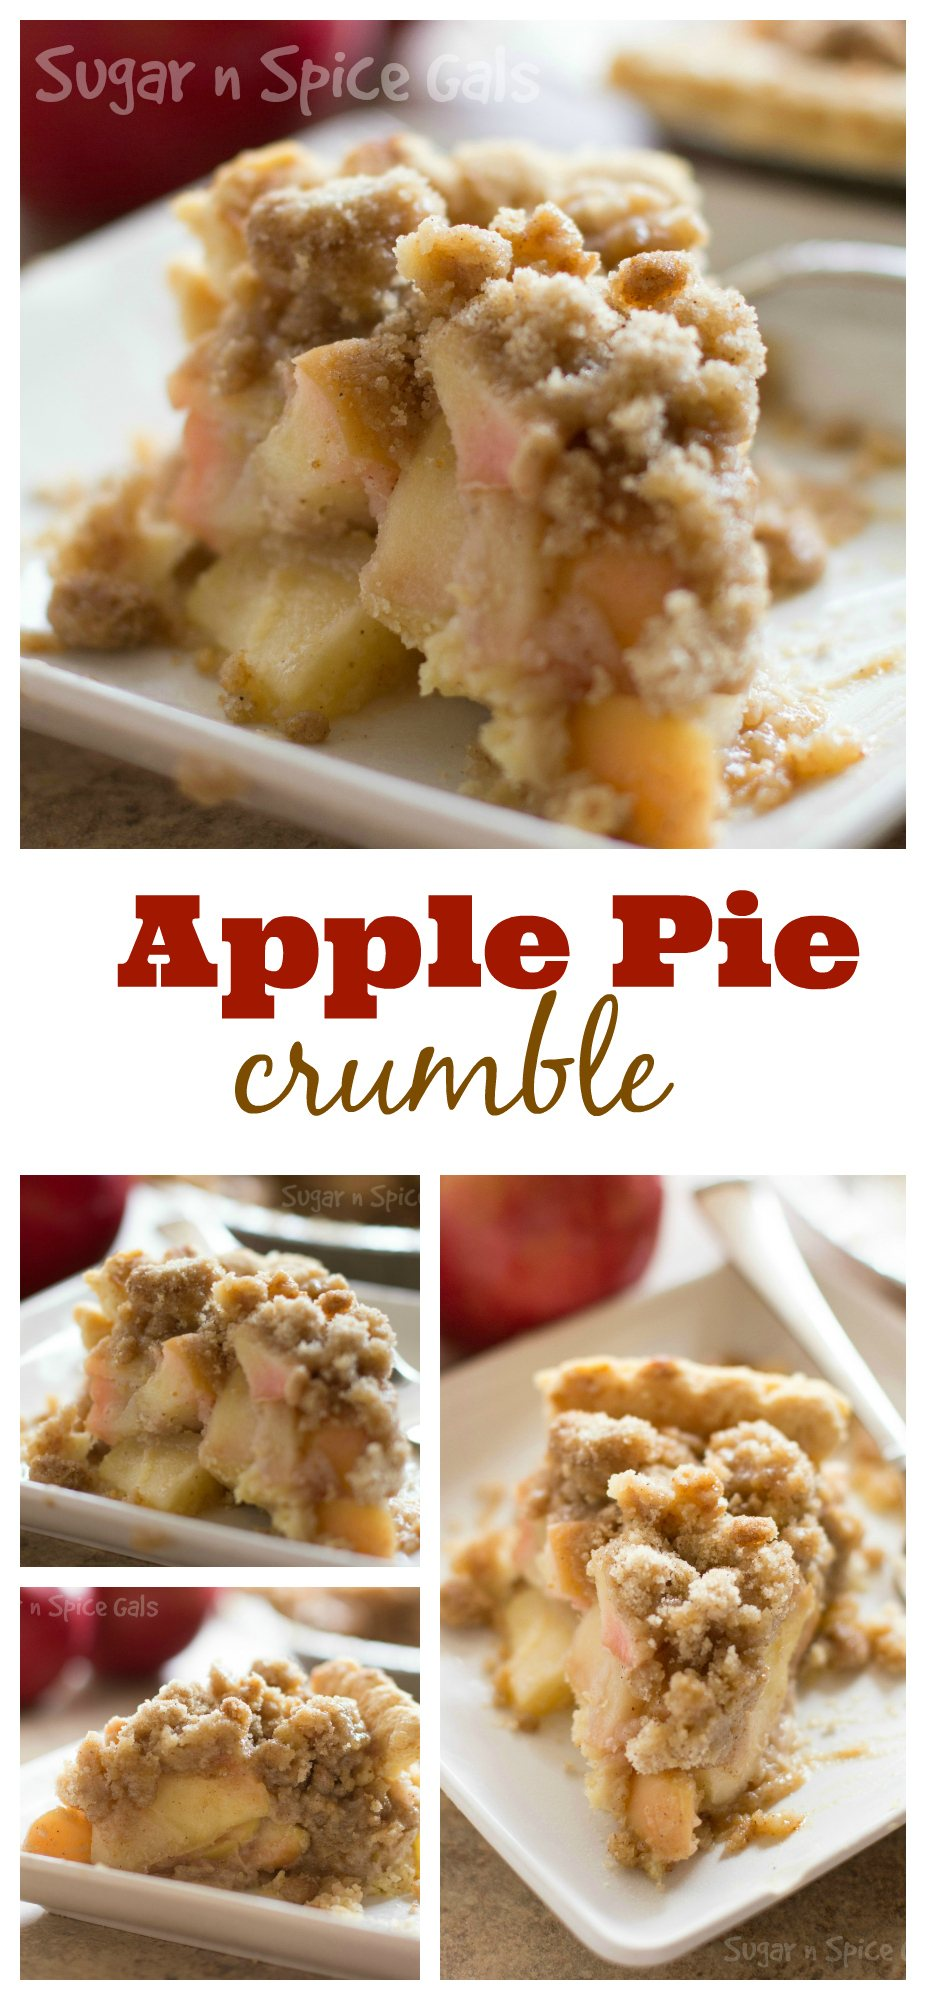 apple-pie-crumble-collage-2